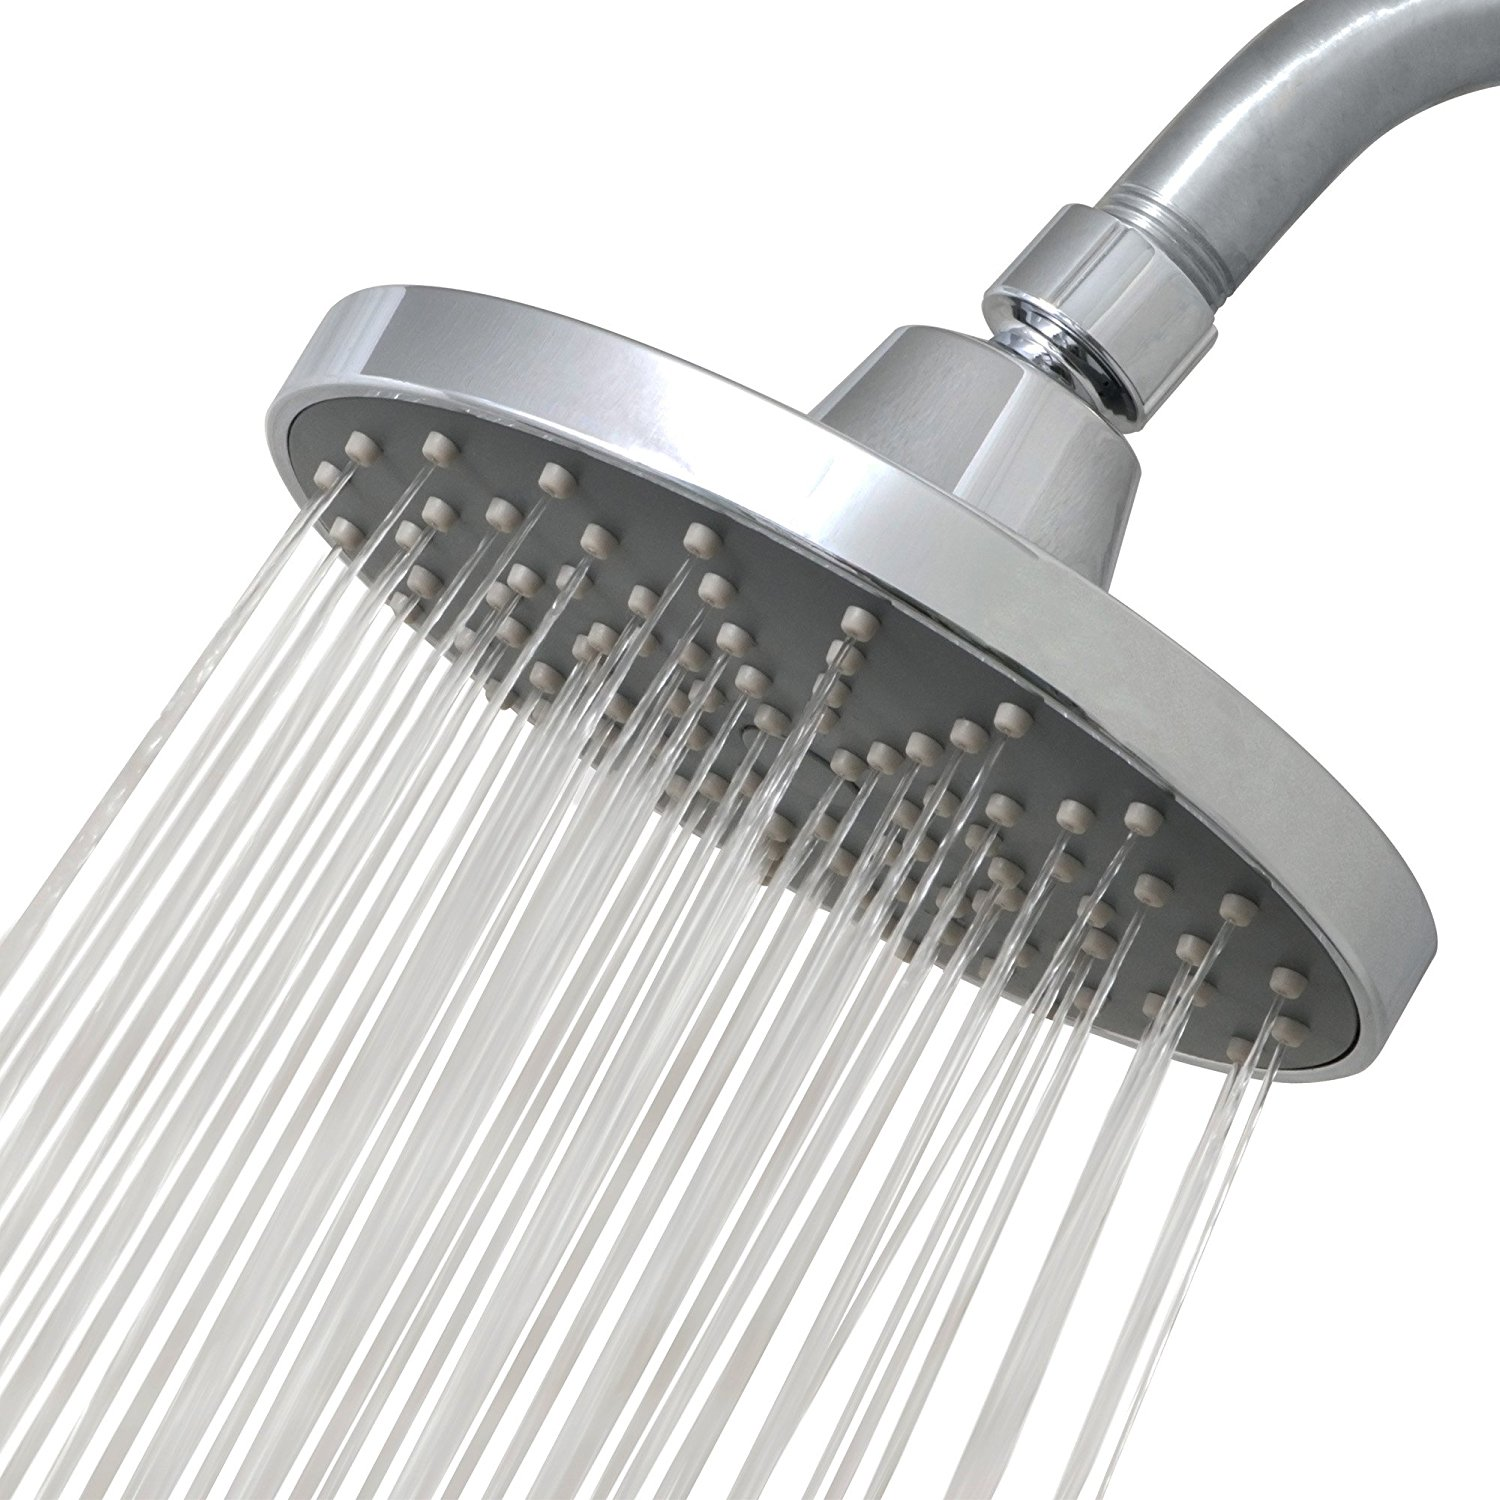 Best Rain Shower Head Reviews and Comparison - Behind The Shower